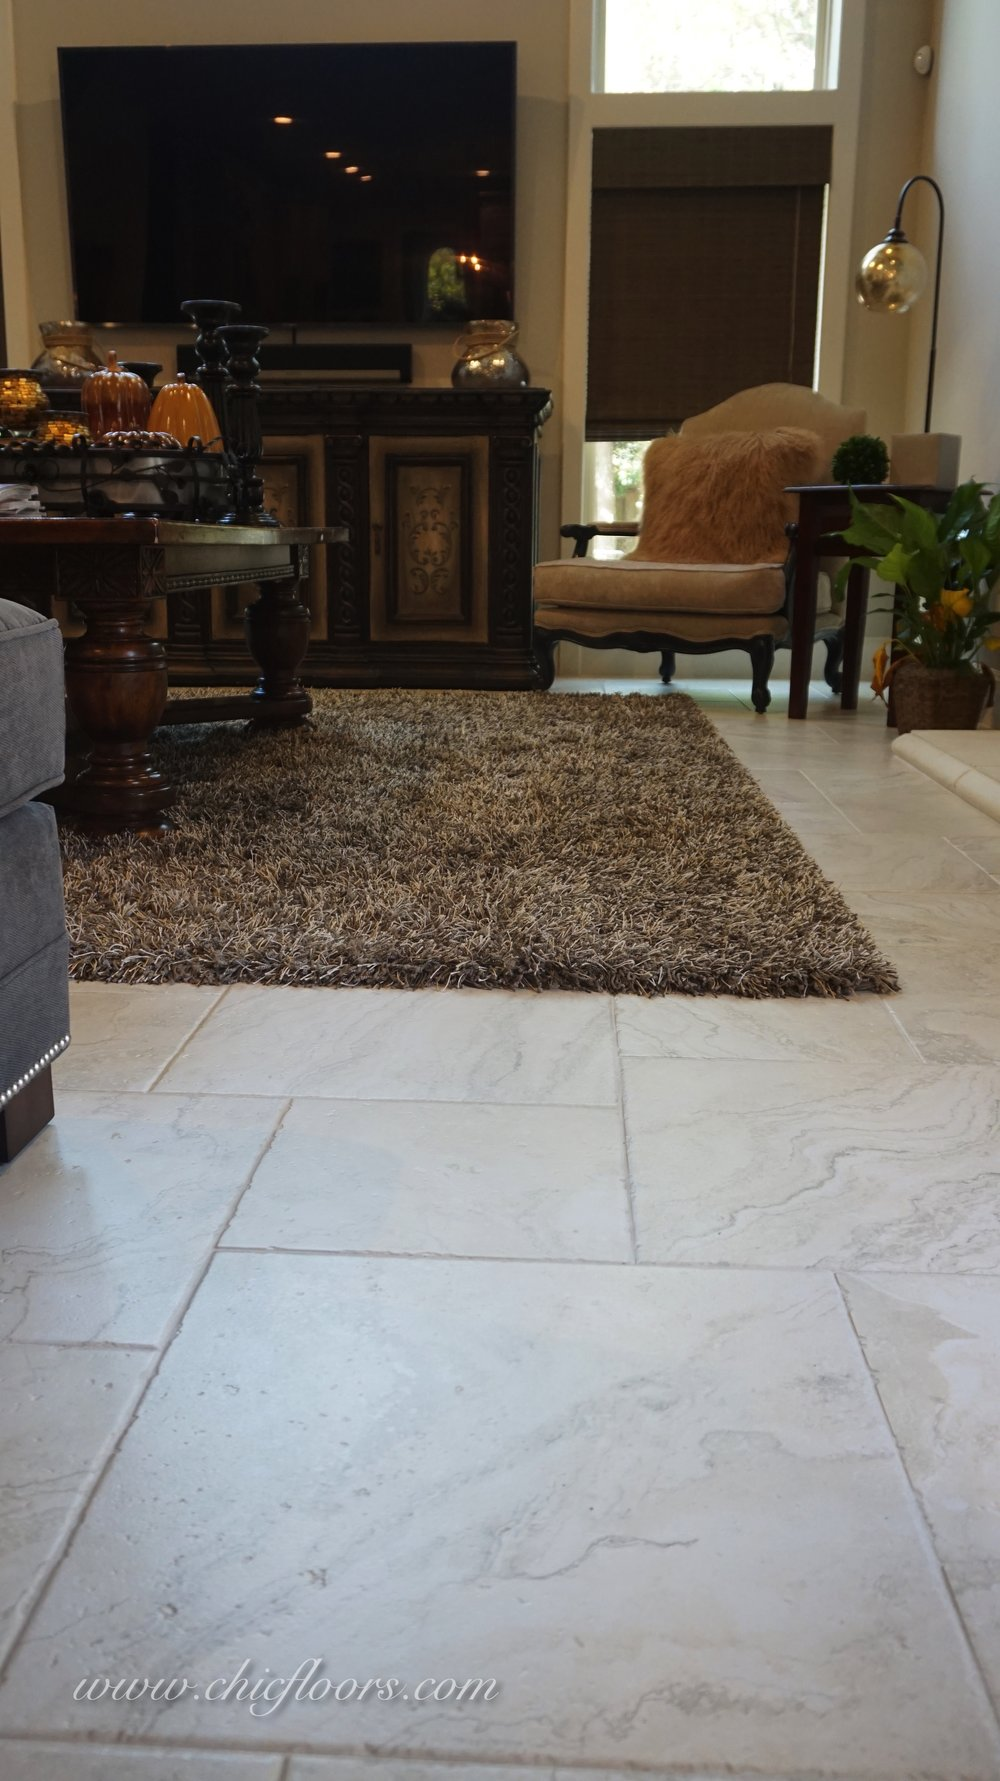 The same tile also pairs beautifully with the custom-sized rug, from Tuftex, style Bling.